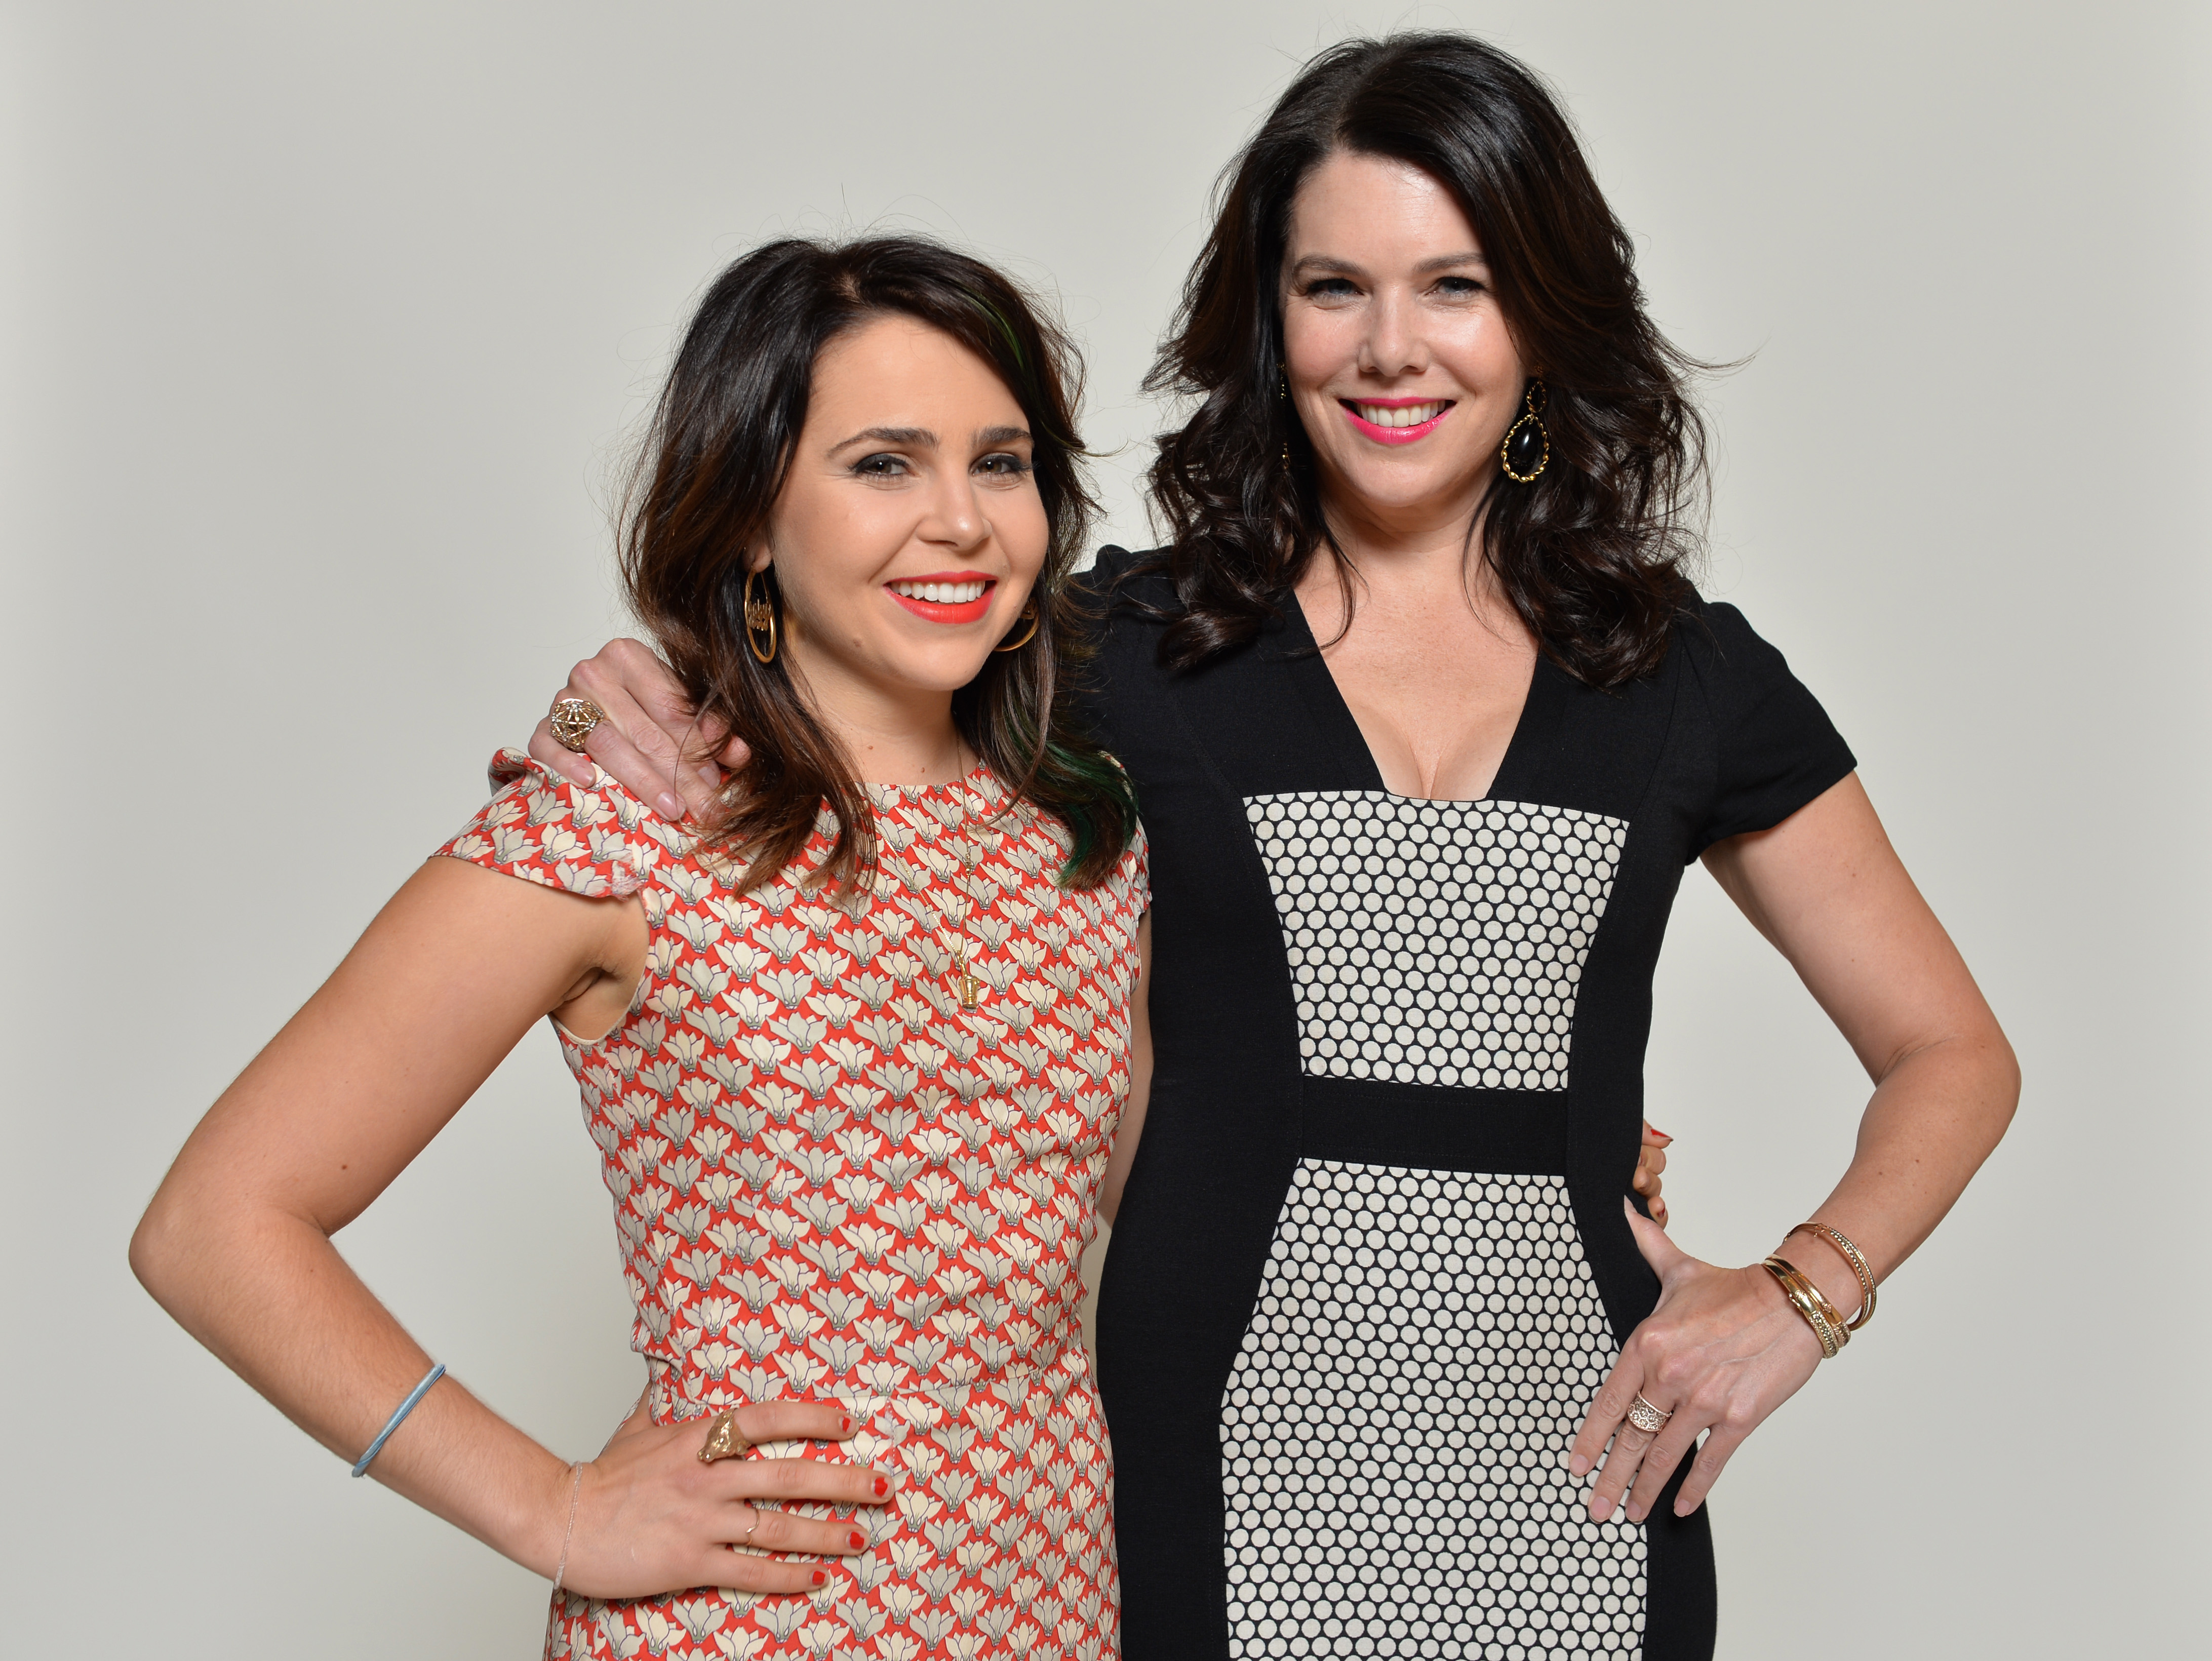 Mae Whitman and Lauren Graham pose for a portrait during NBC 2013 Summer Press Tour at The Beverly Hilton Hotel on July 27, 2013 in Beverly Hills, California.